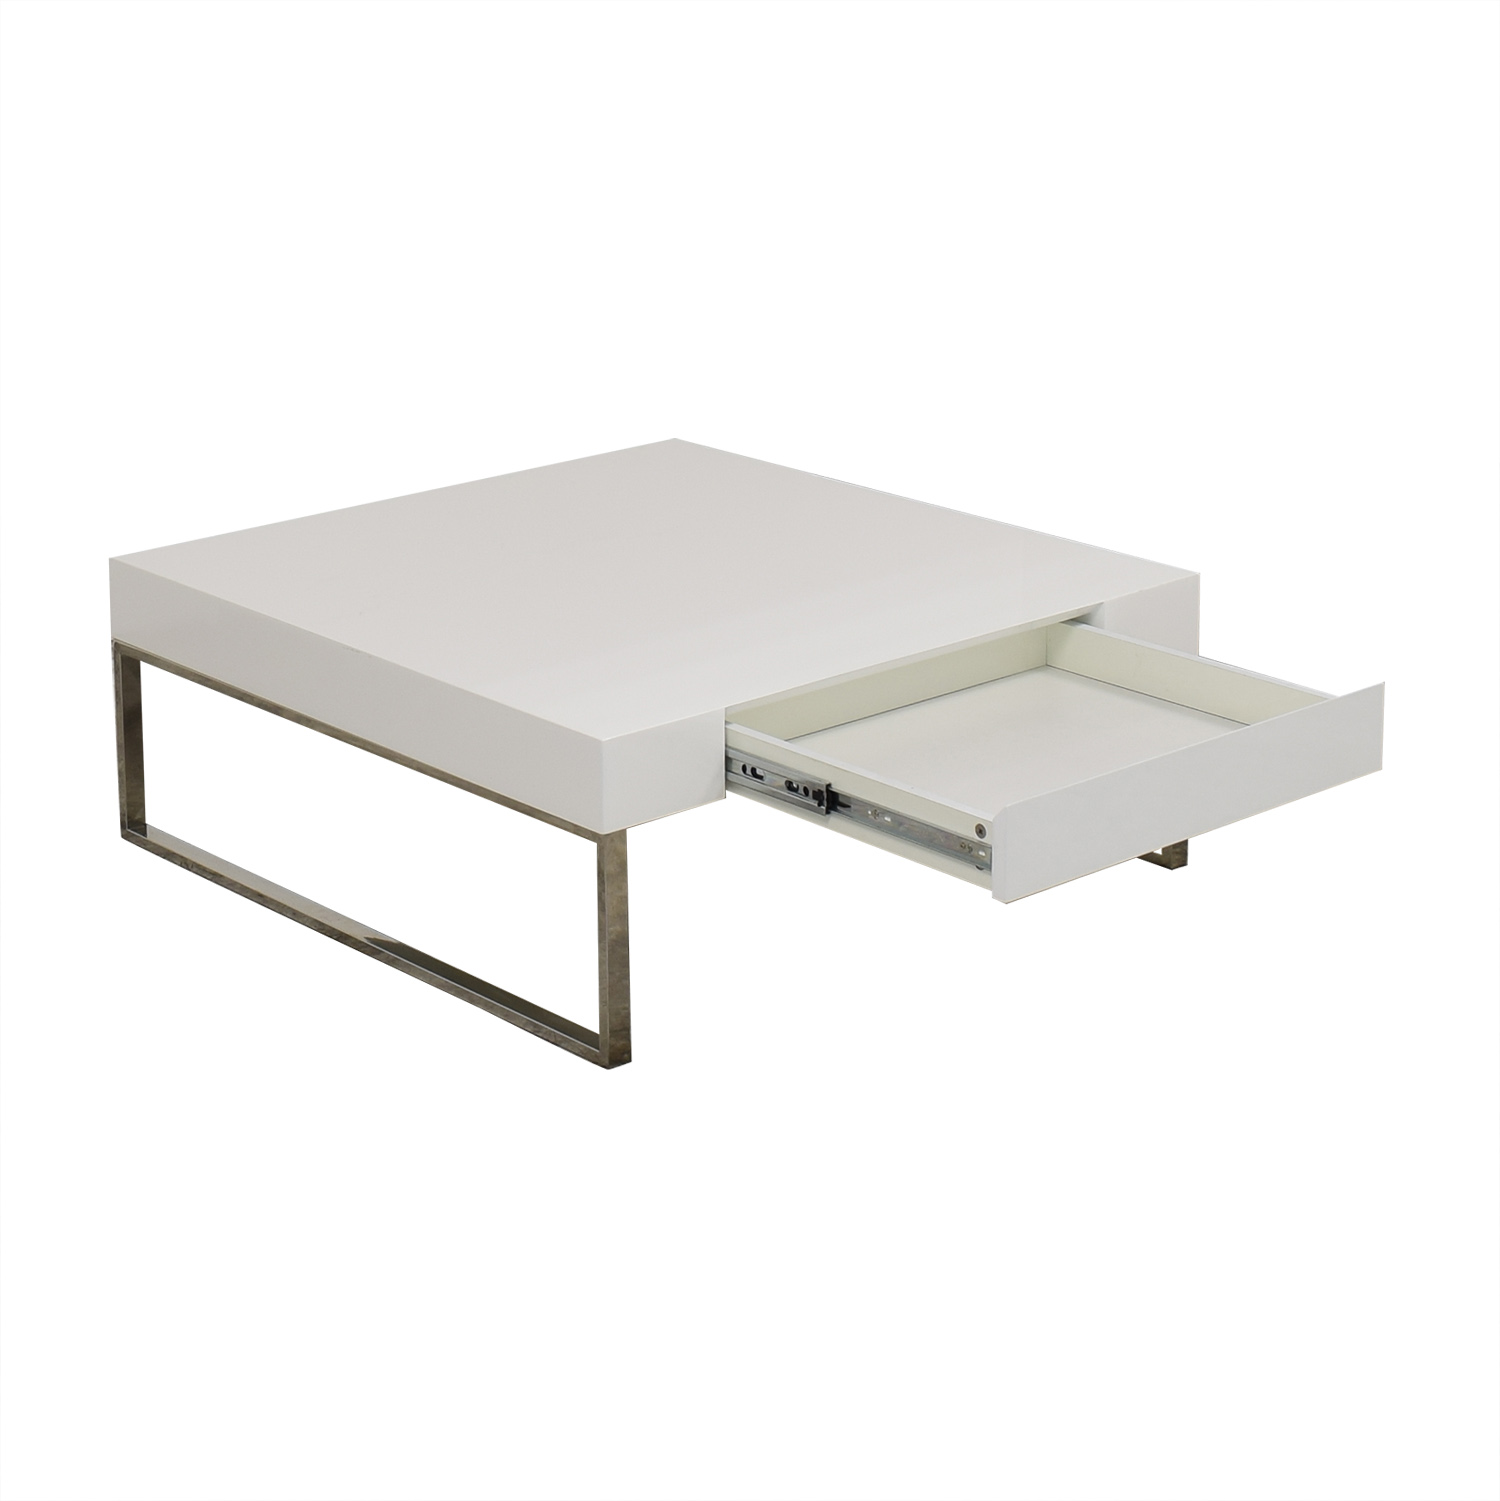 Modani Modani Gavino Coffee Table nj